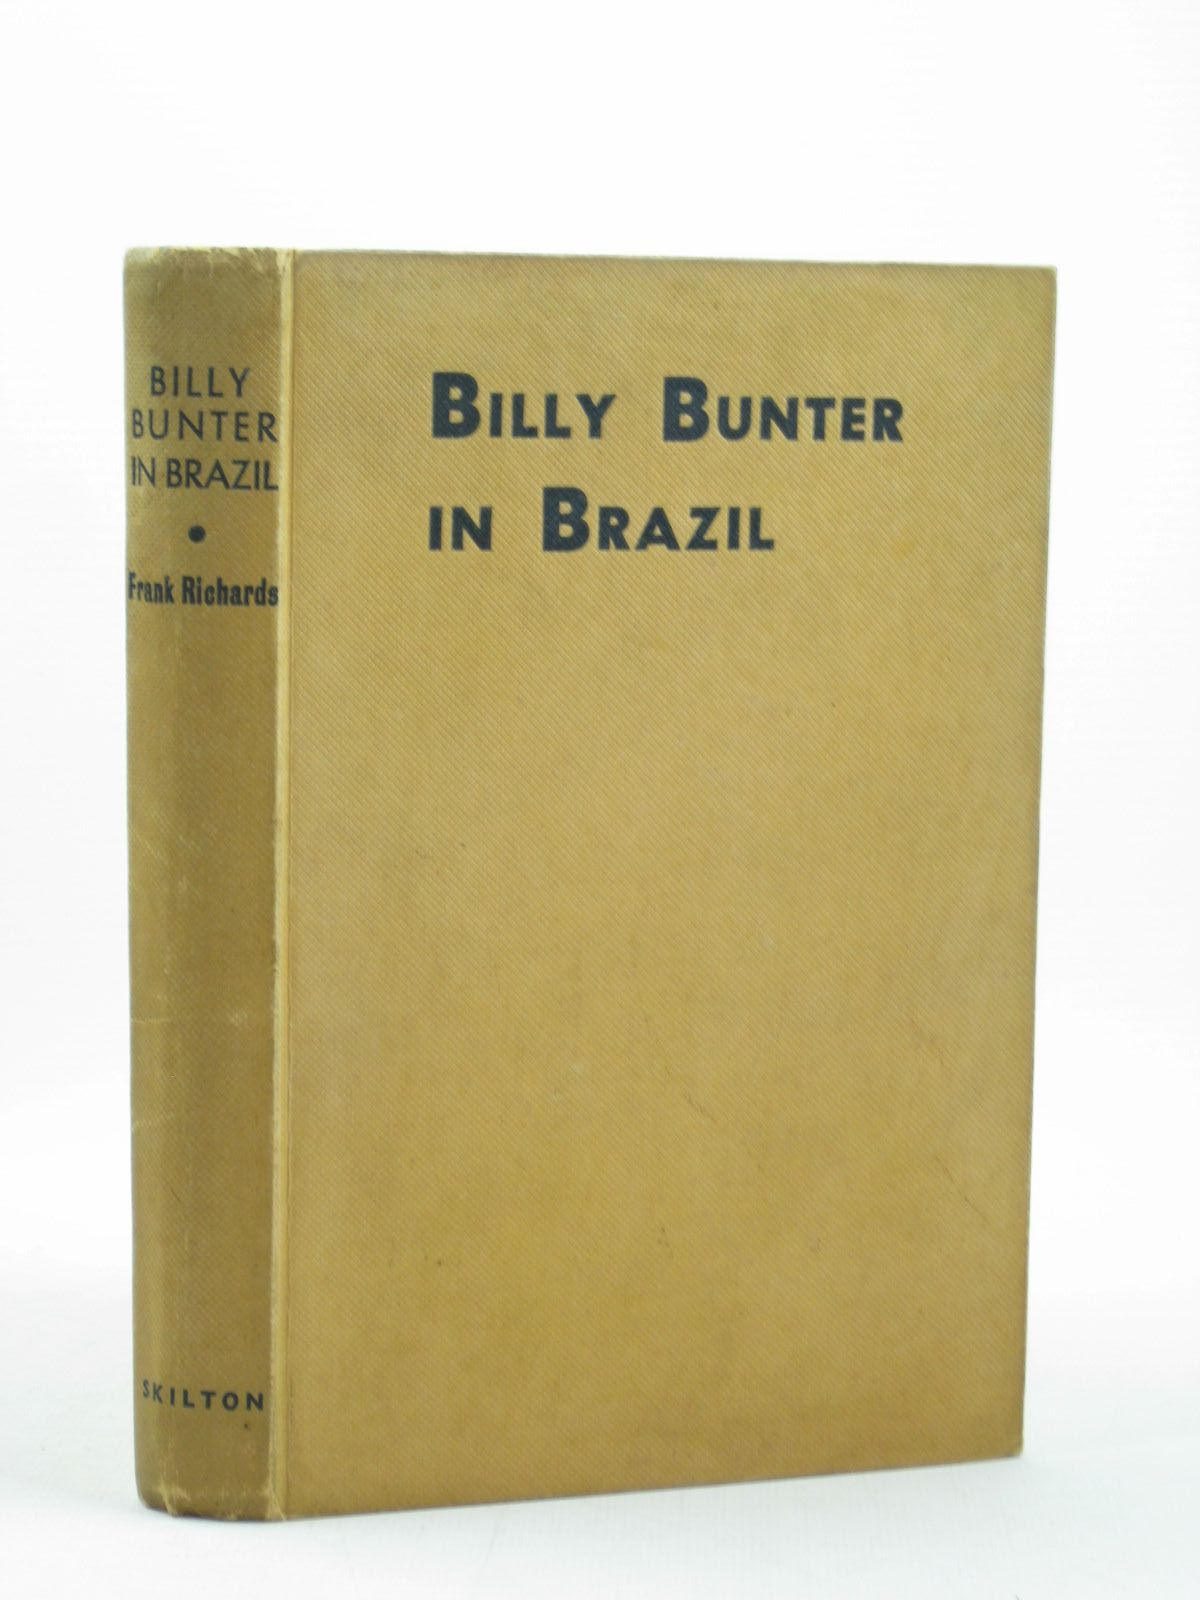 Photo of BILLY BUNTER IN BRAZIL written by Richards, Frank illustrated by Macdonald, R.J. published by Charles Skilton Ltd. (STOCK CODE: 1402396)  for sale by Stella & Rose's Books